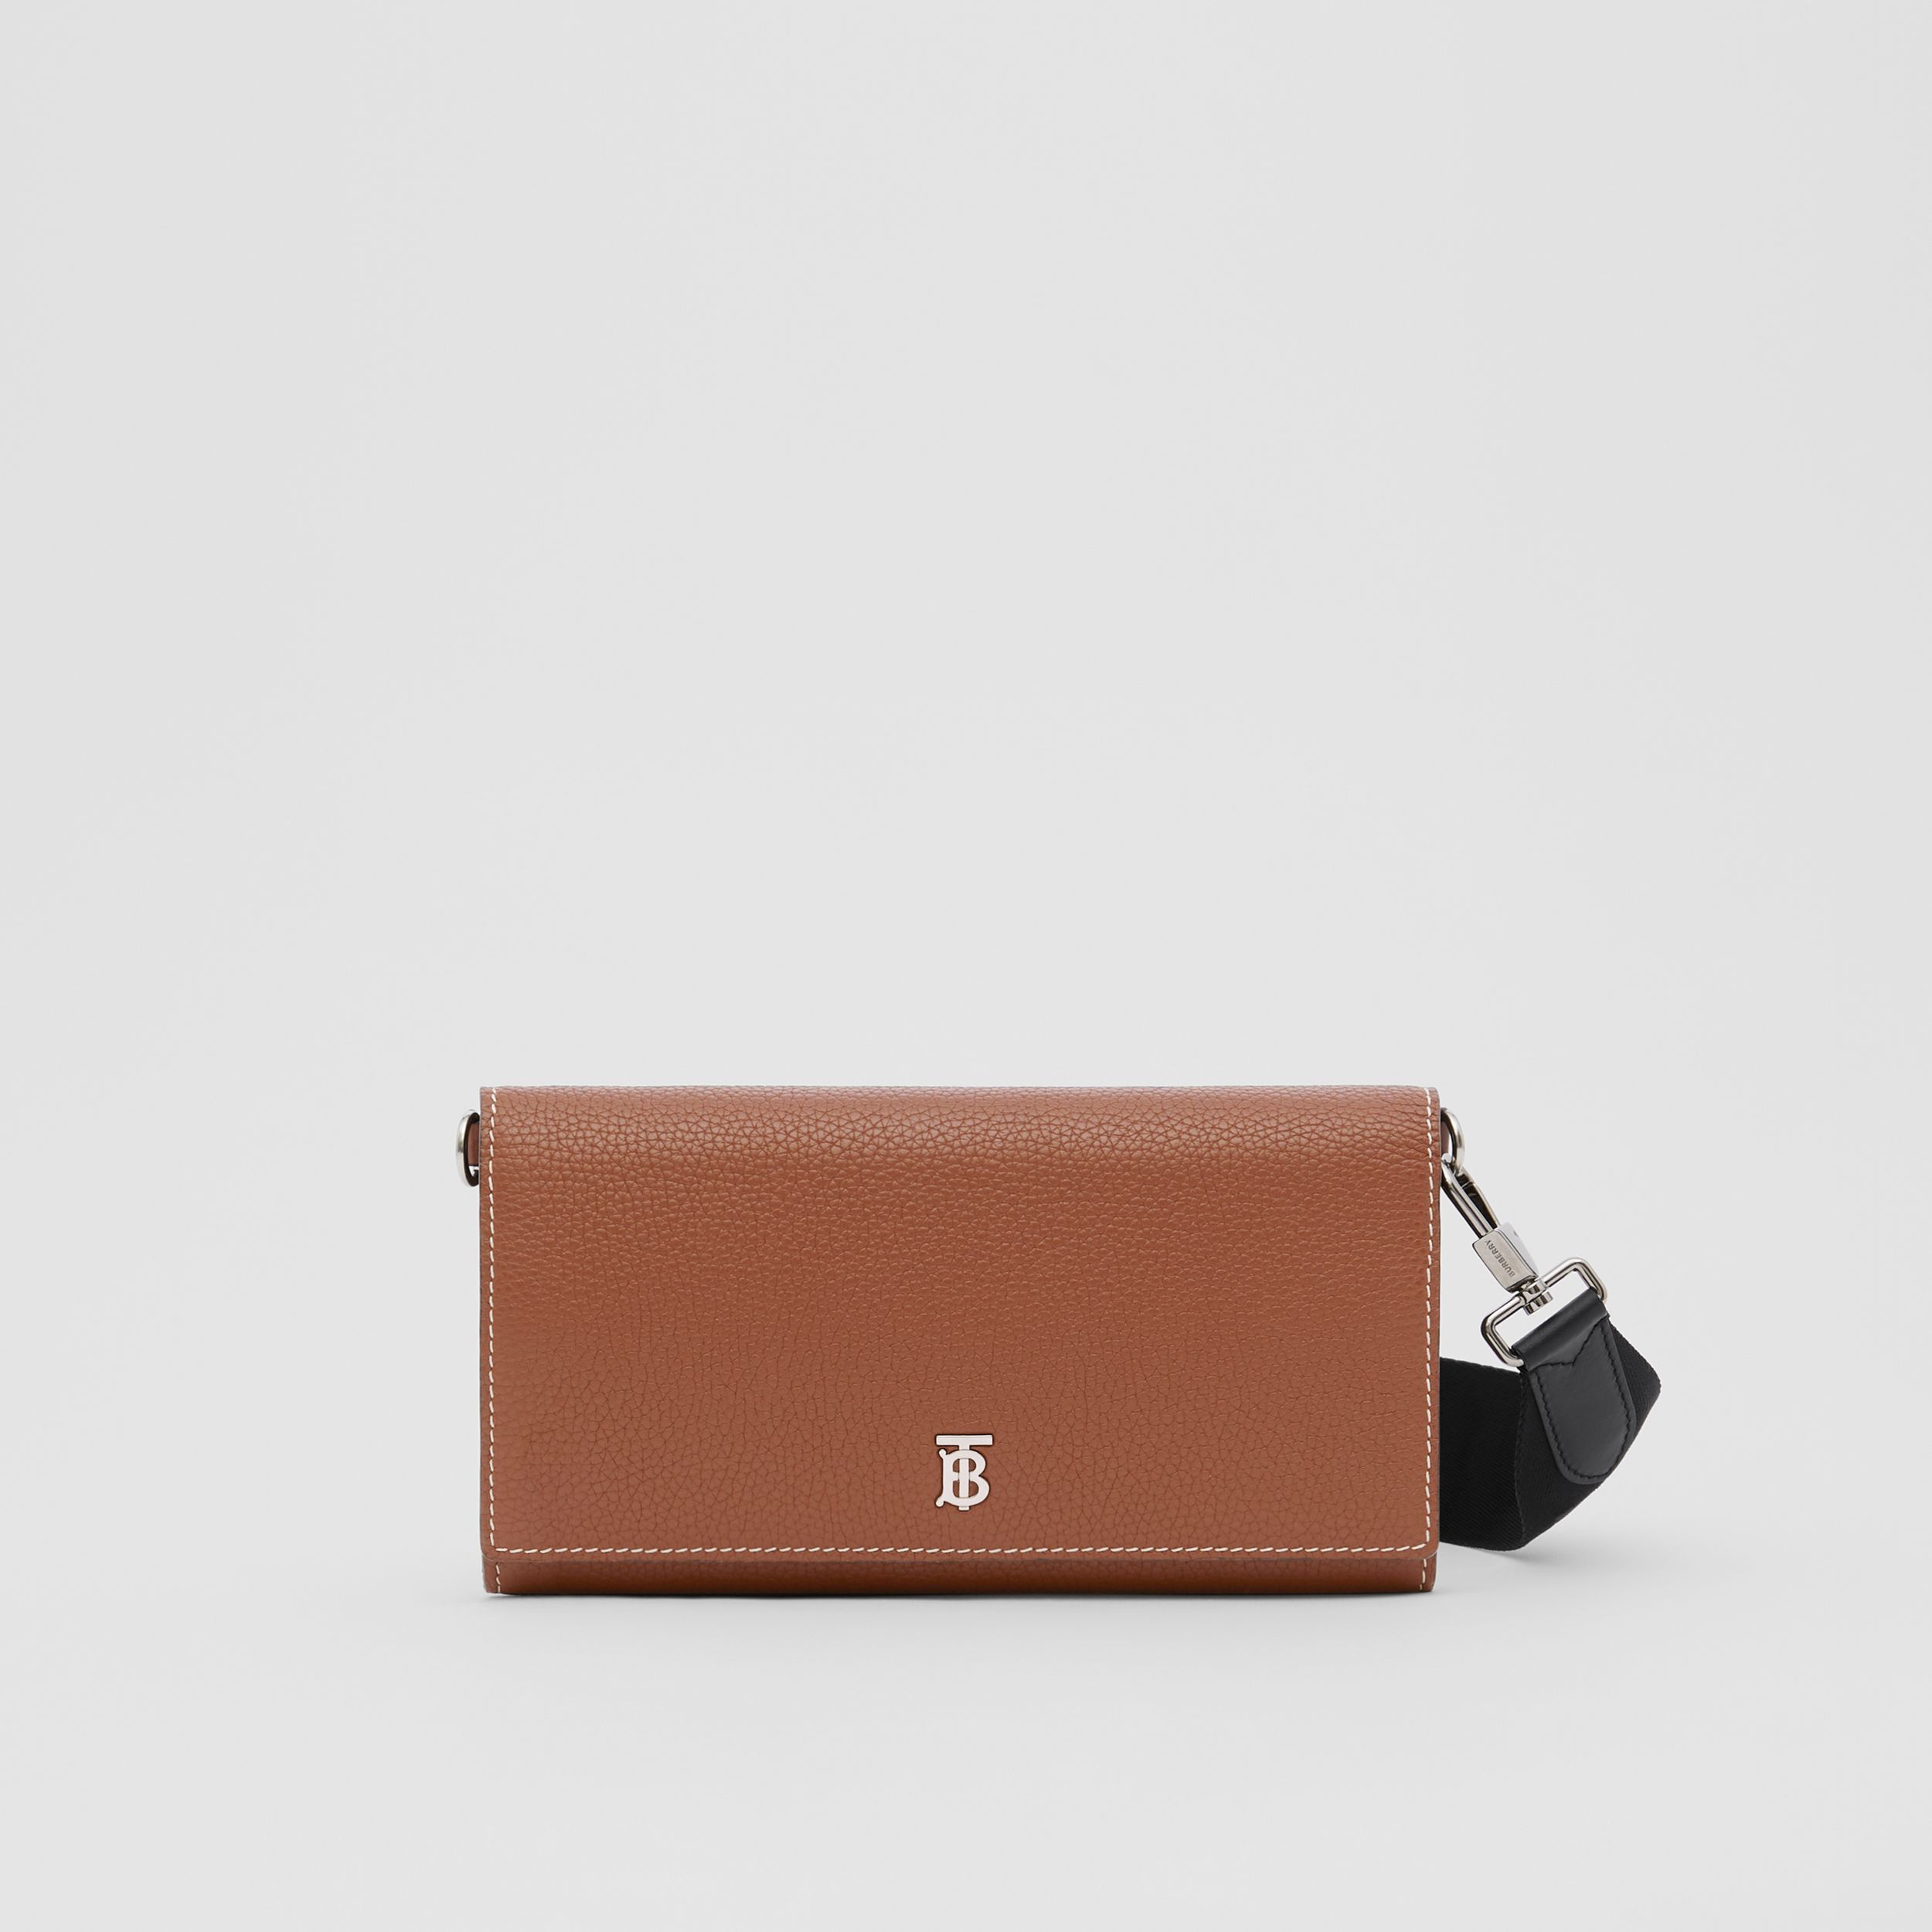 Grainy Leather Wallet with Detachable Strap in Tan | Burberry Hong Kong S.A.R. - 1